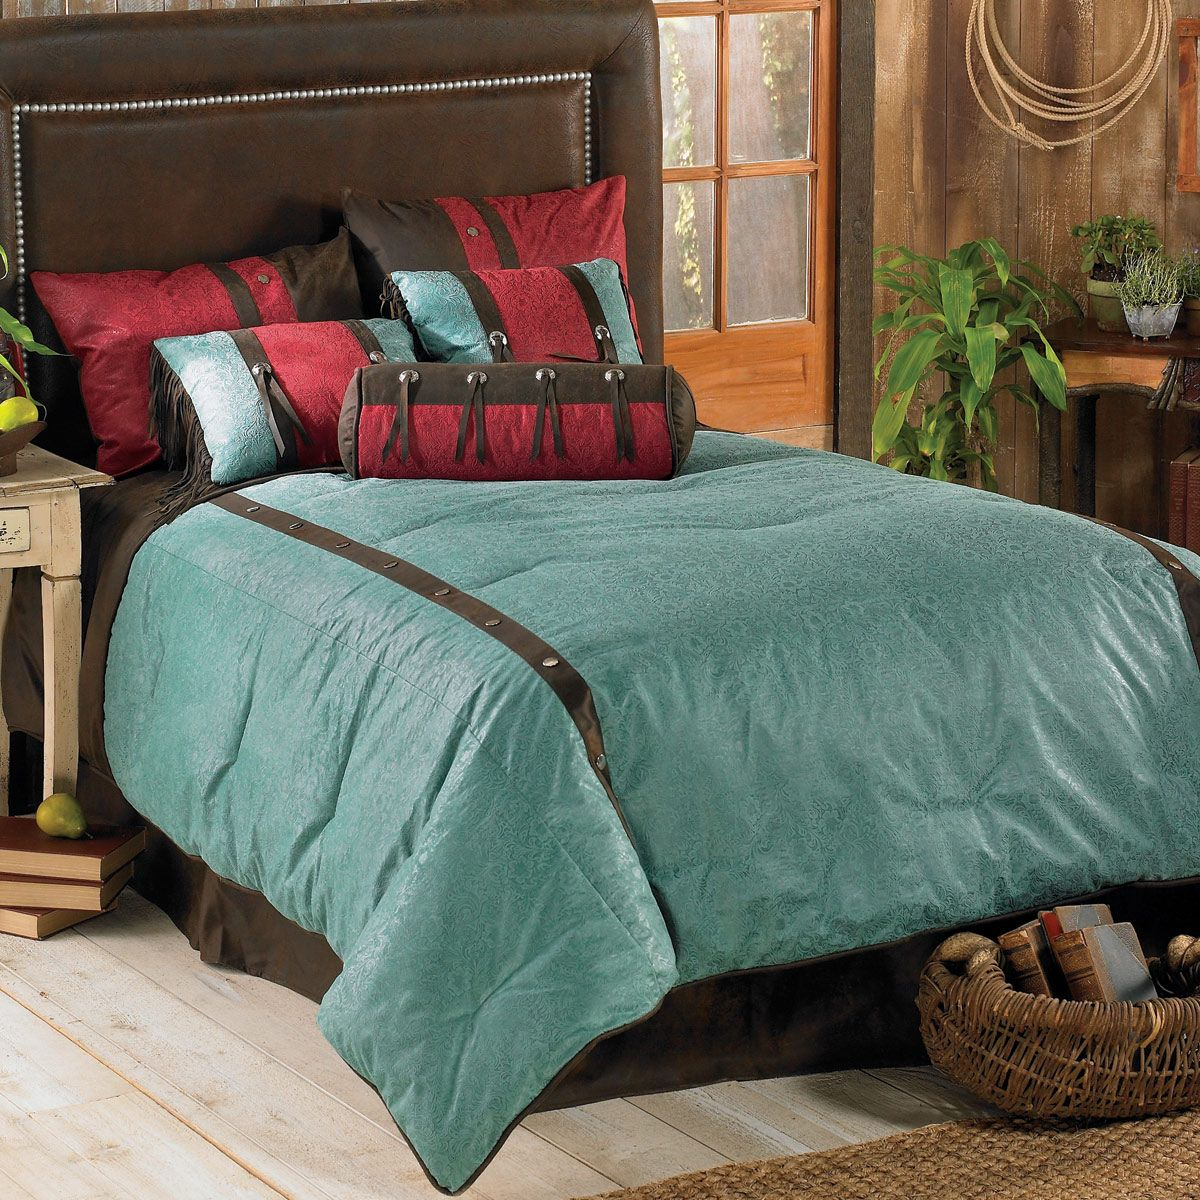 Cheyenne Turquoise Bed Set - Super Queen - OUT OF STOCK - ETA 11/11/2020